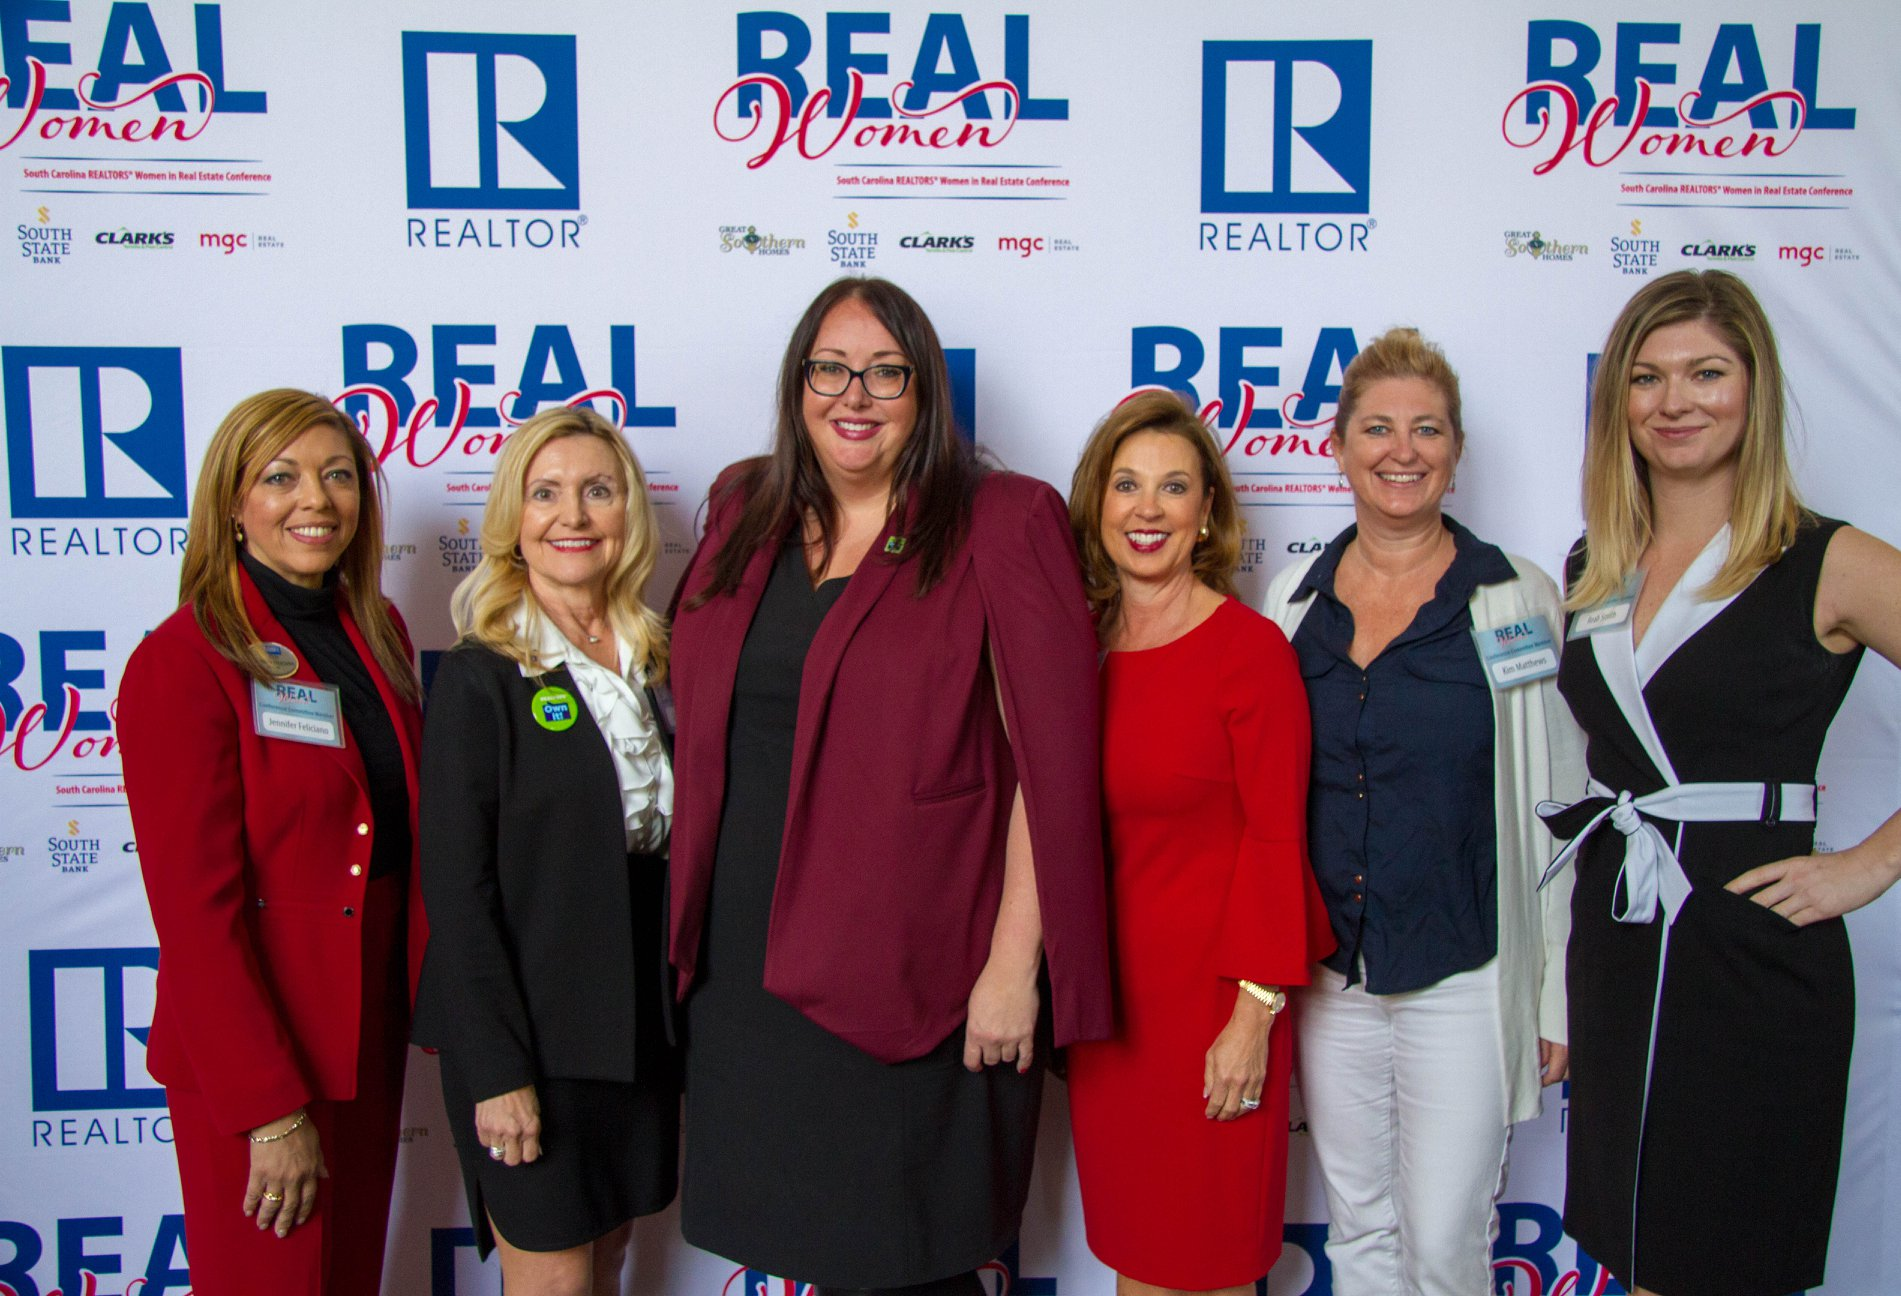 Attendees of the South Carolina REALTORS® REAL Women: SC Women in Real Estate conference